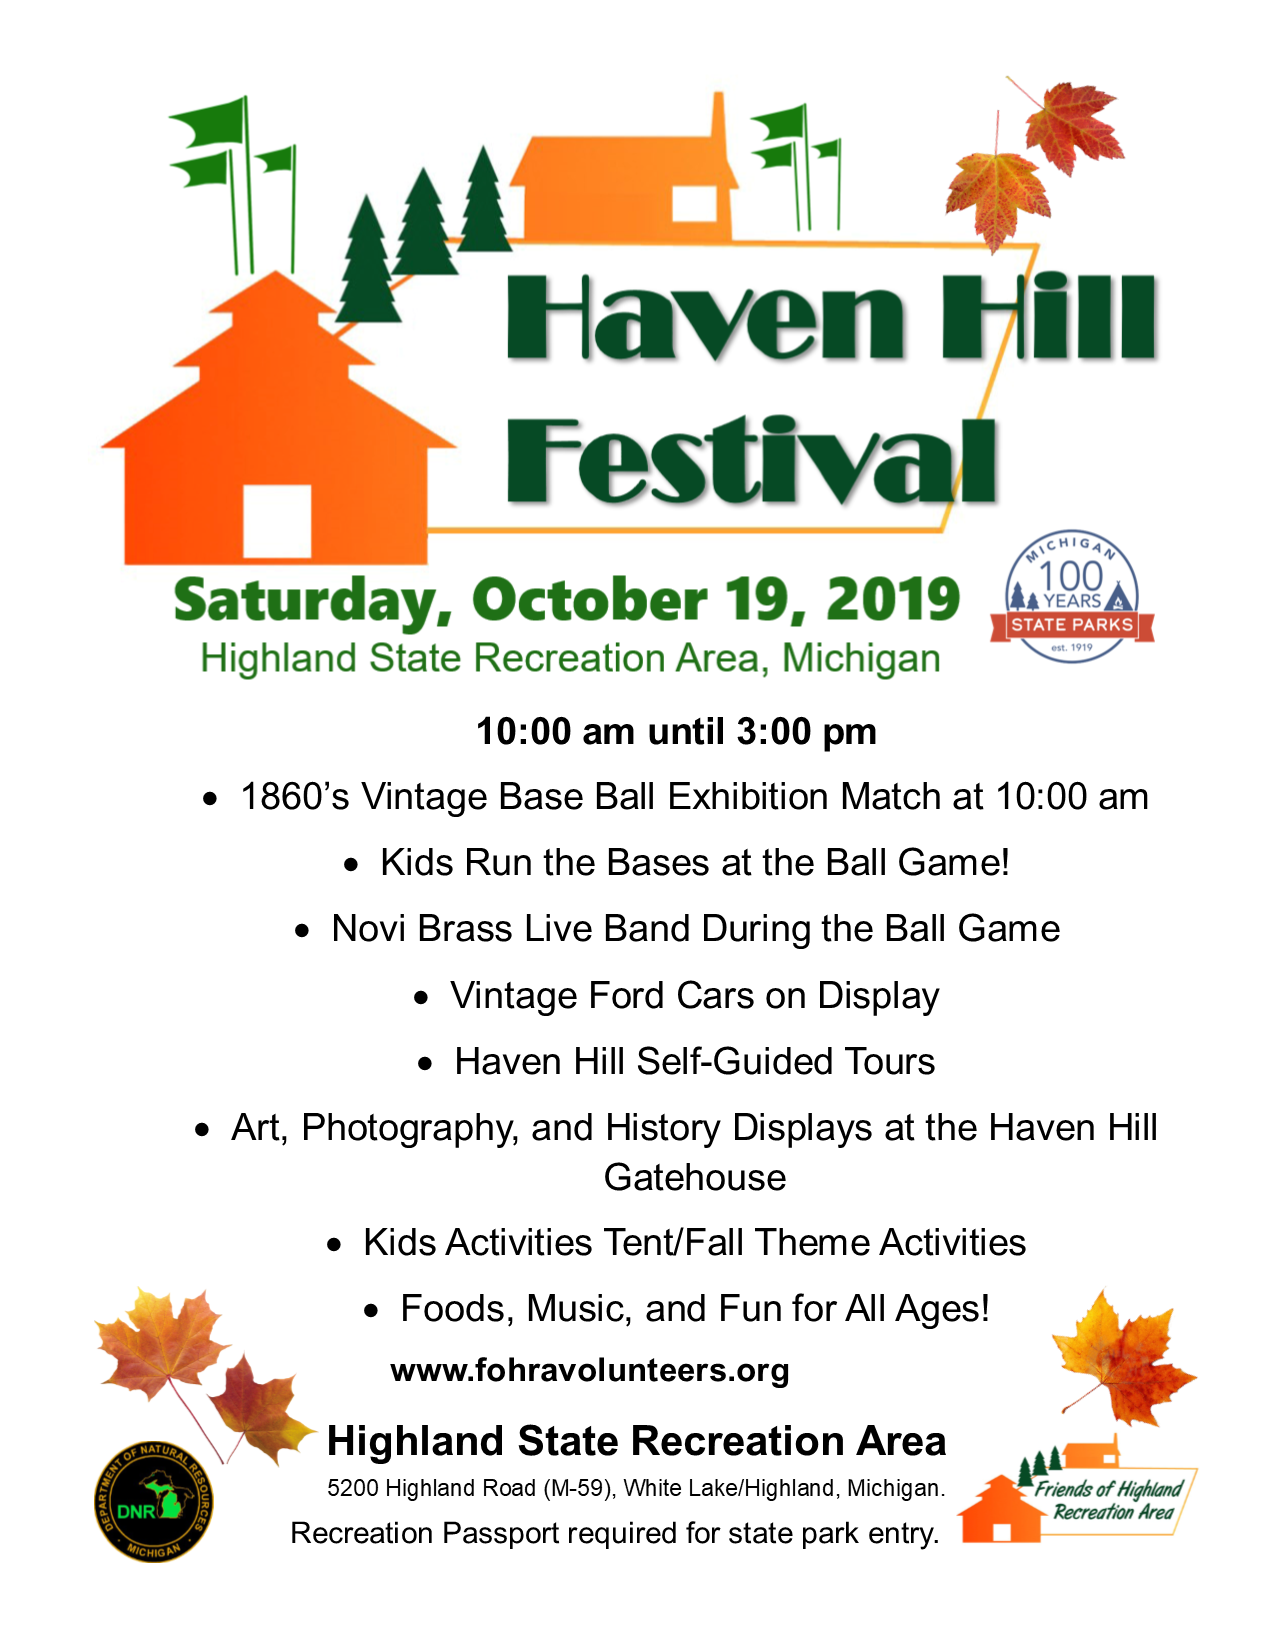 HHF 2019 85x11 Flyer as PNG.PNG